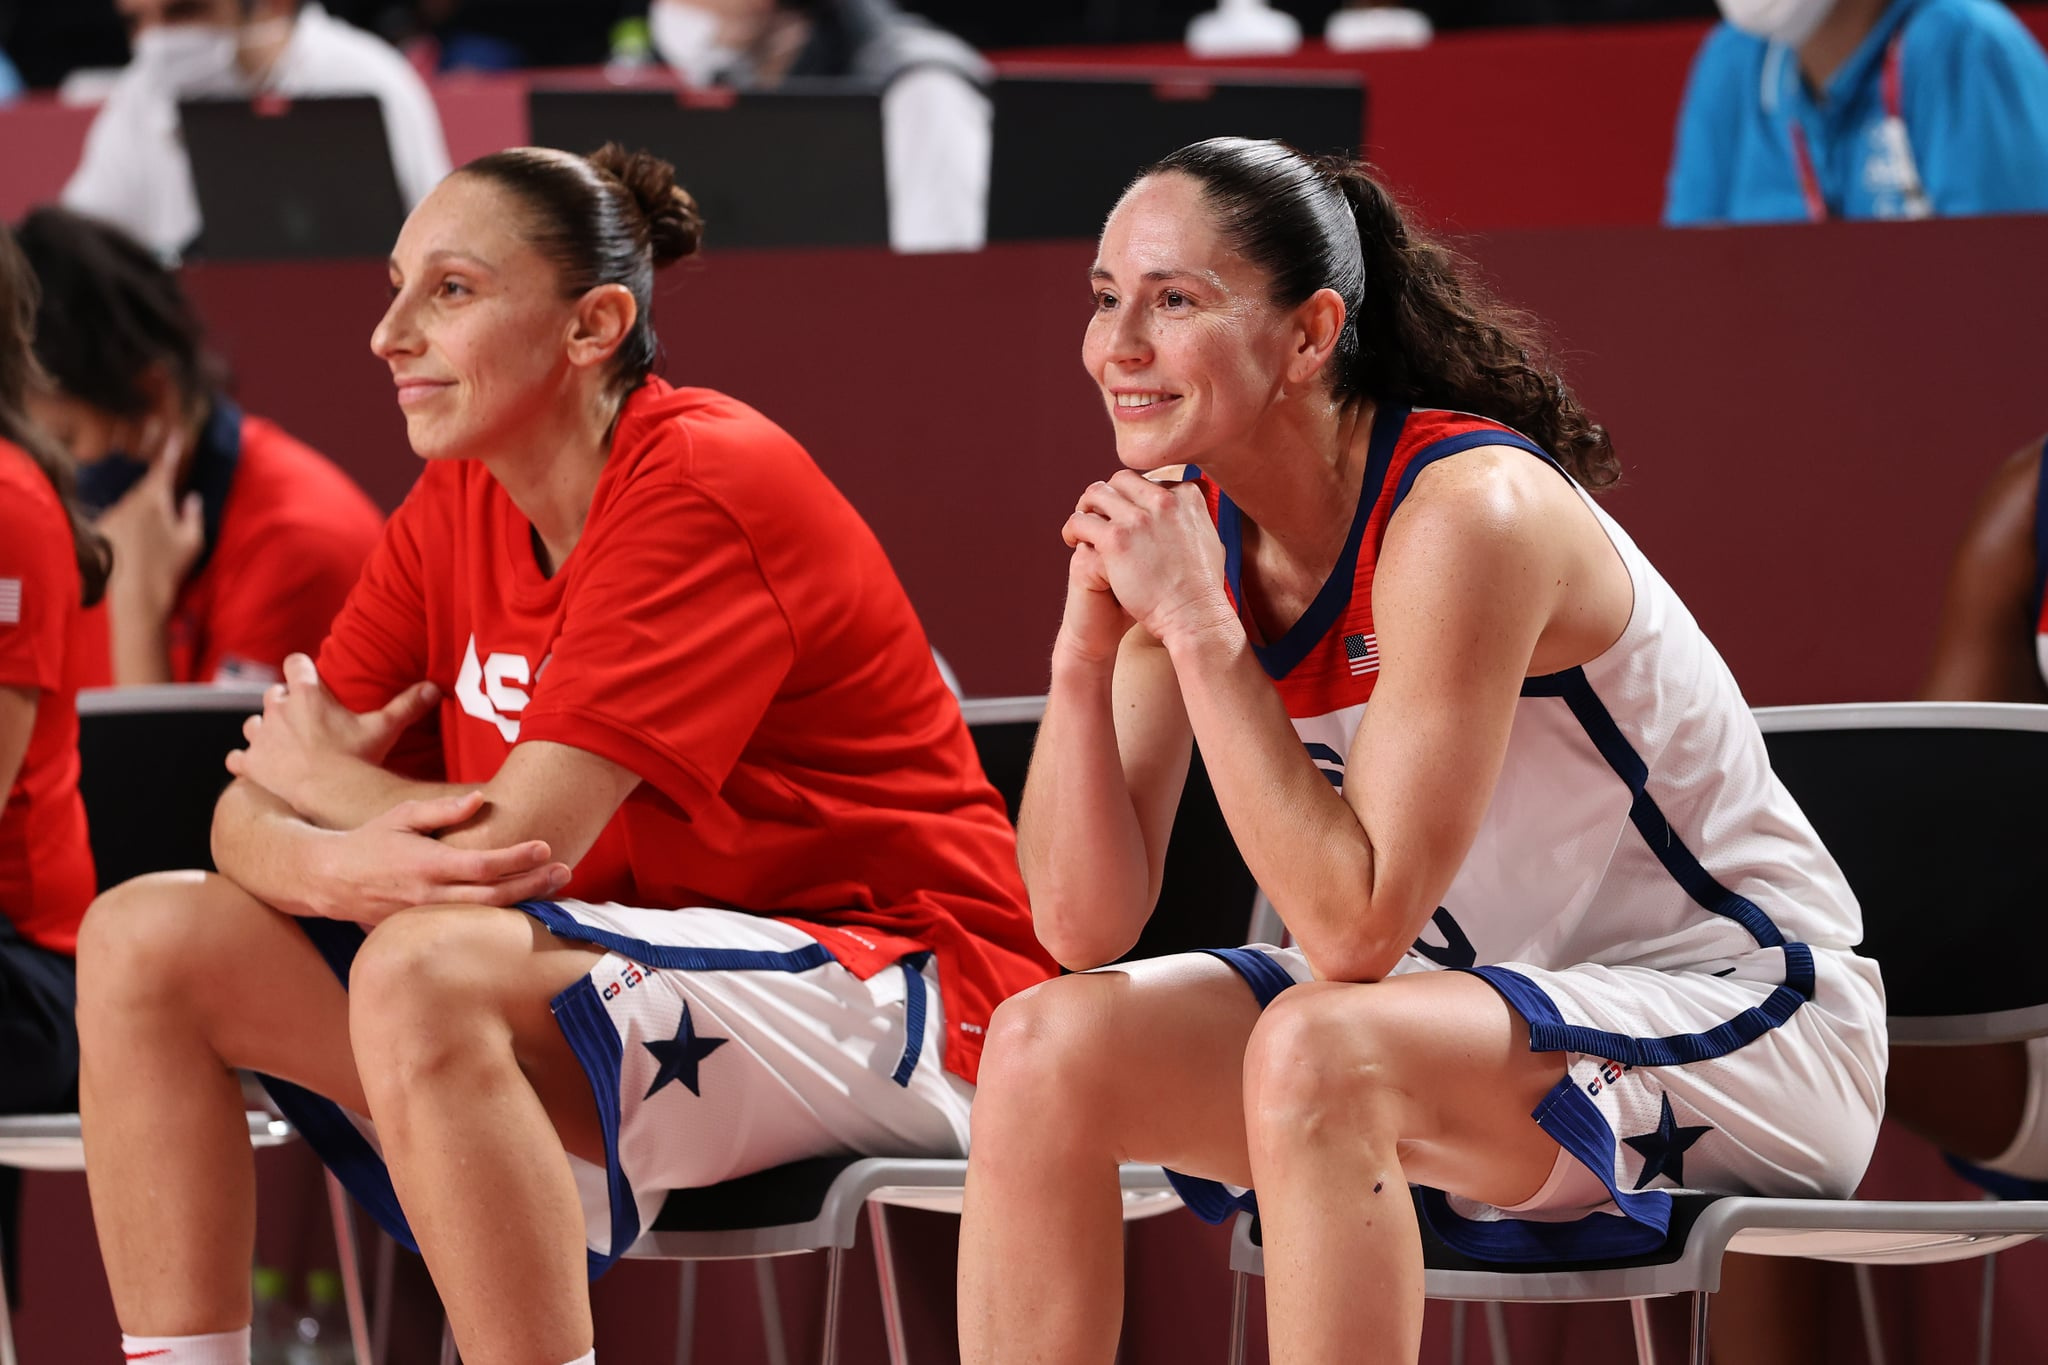 SAITAMA, JAPAN - AUGUST 08: Sue Bird #6 and Diana Taurasi #12 of Team United States share react in celebration from the bench during the second half of the Women's Basketball final game between Team United States and Team Japan on day sixteen of the 2020 Tokyo Olympic games at Saitama Super Arena on August 08, 2021 in Saitama, Japan. (Photo by Gregory Shamus/Getty Images)